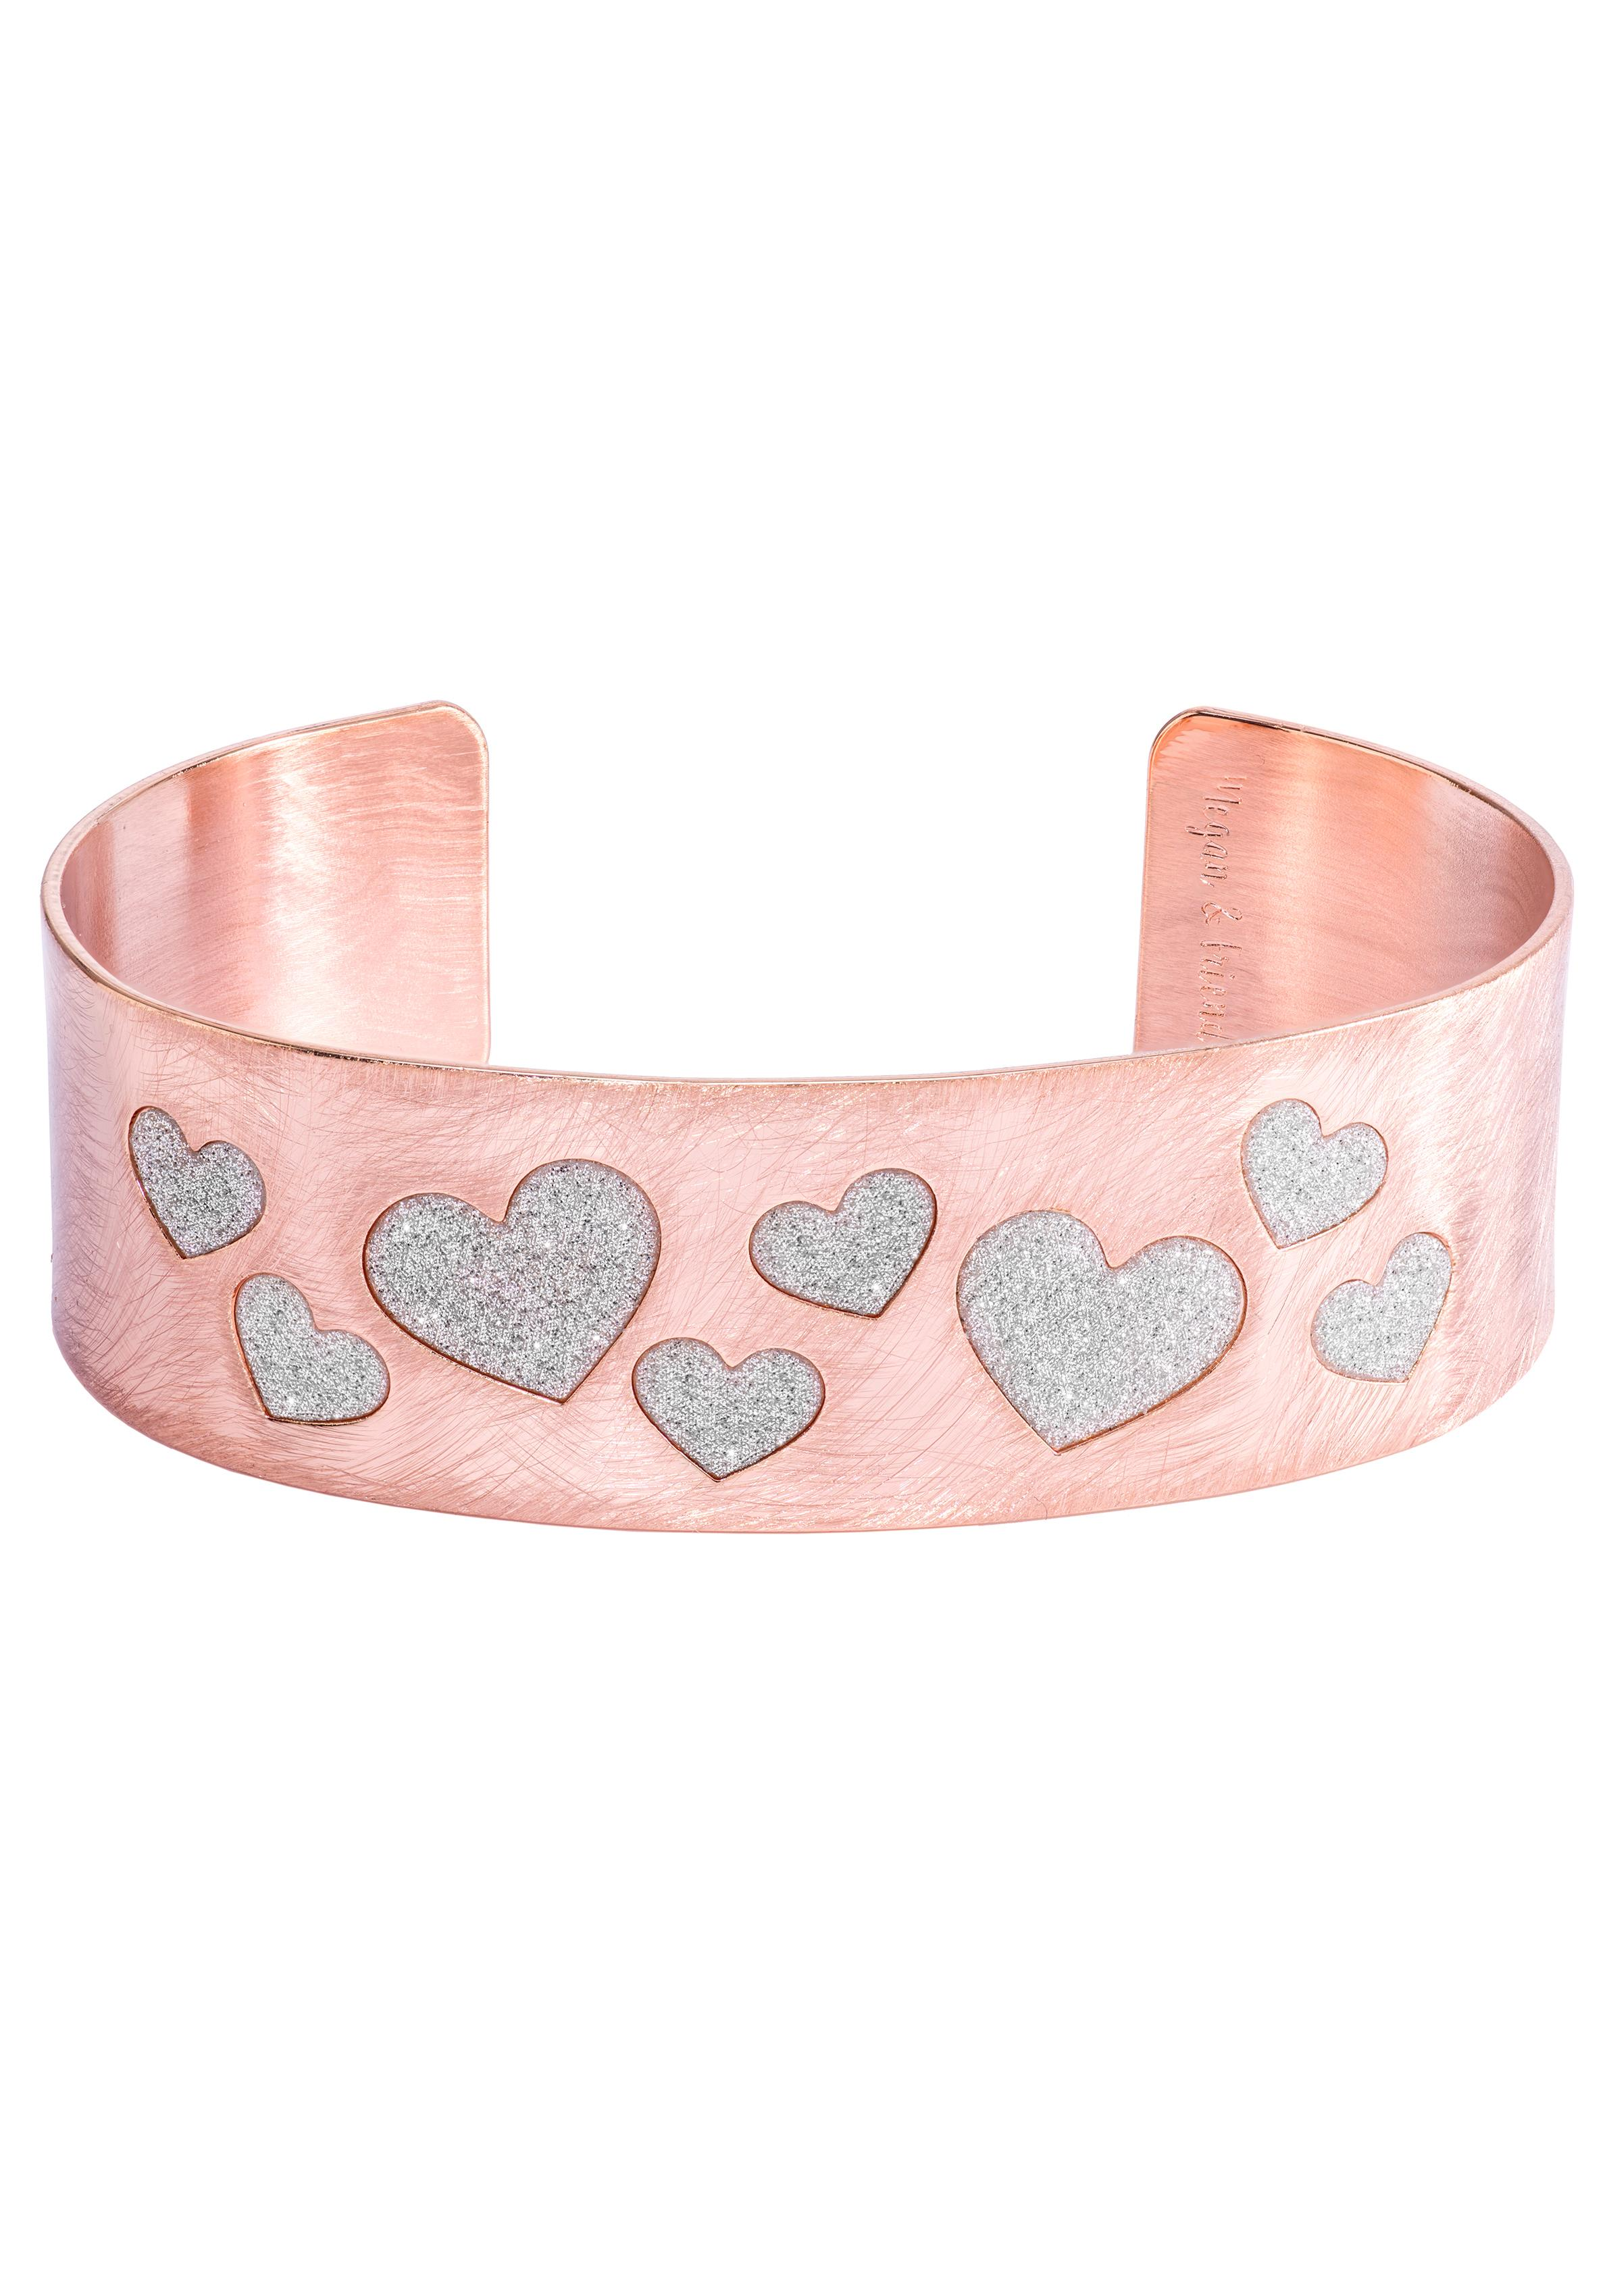 Megan & Friends Armspange HEARTS Herzen MF20091-03 | Schmuck > Armbänder > Armspangen | Megan & Friends